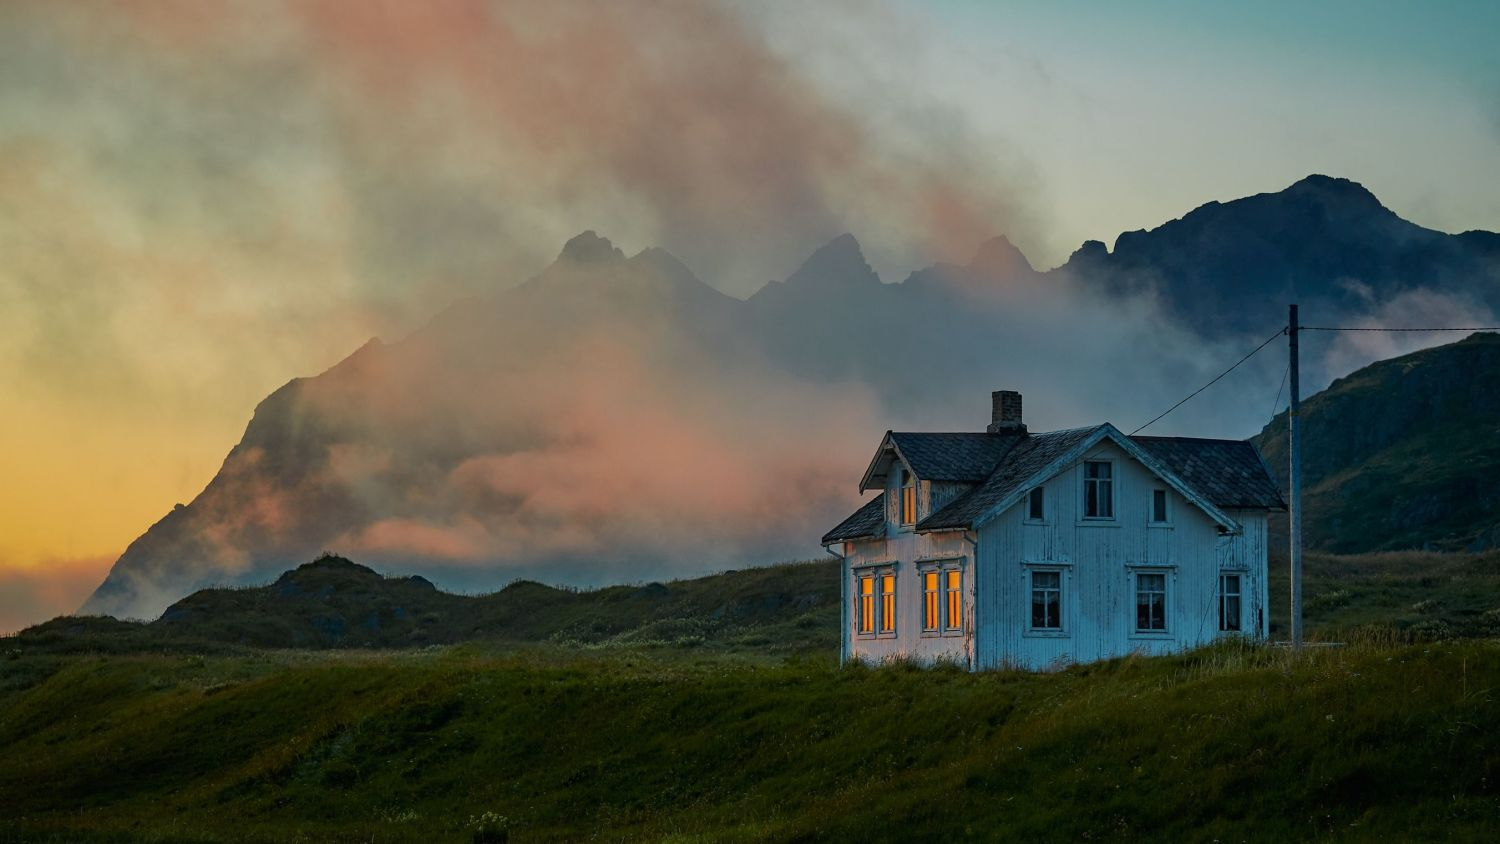 Vacated house in Lofoten. Photo by Vidar Nordli Mathiesen at unsplash.com